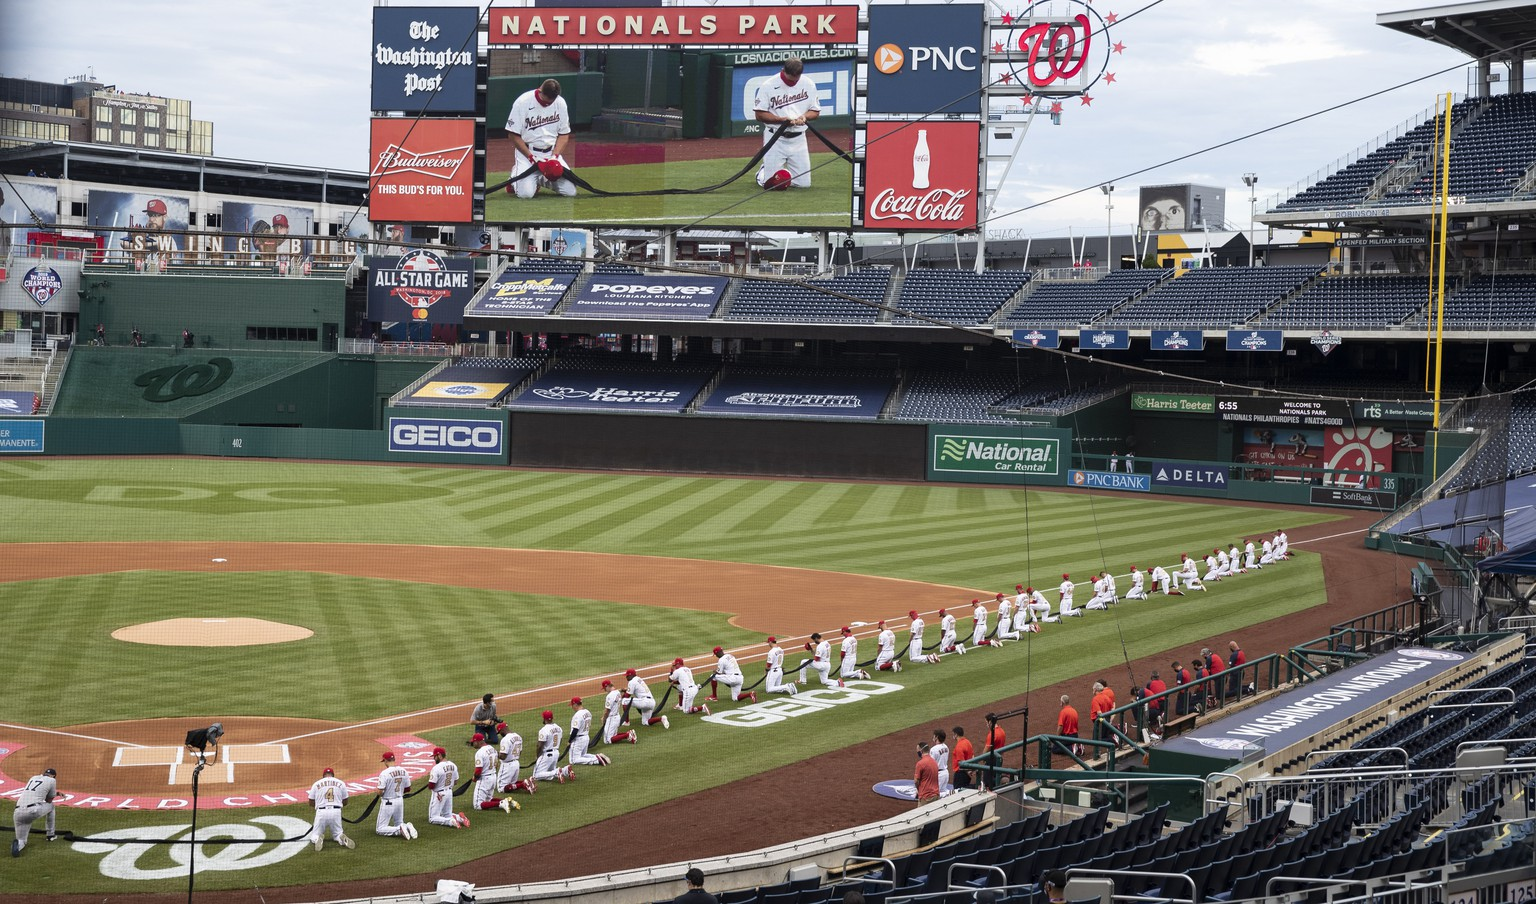 Members of Washington Nationals and against the New York Yankees kneel and hold a piece of black fabric before an opening day baseball game at Nationals Park, Thursday, July 23, 2020, in Washington. (AP Photo/Alex Brandon)